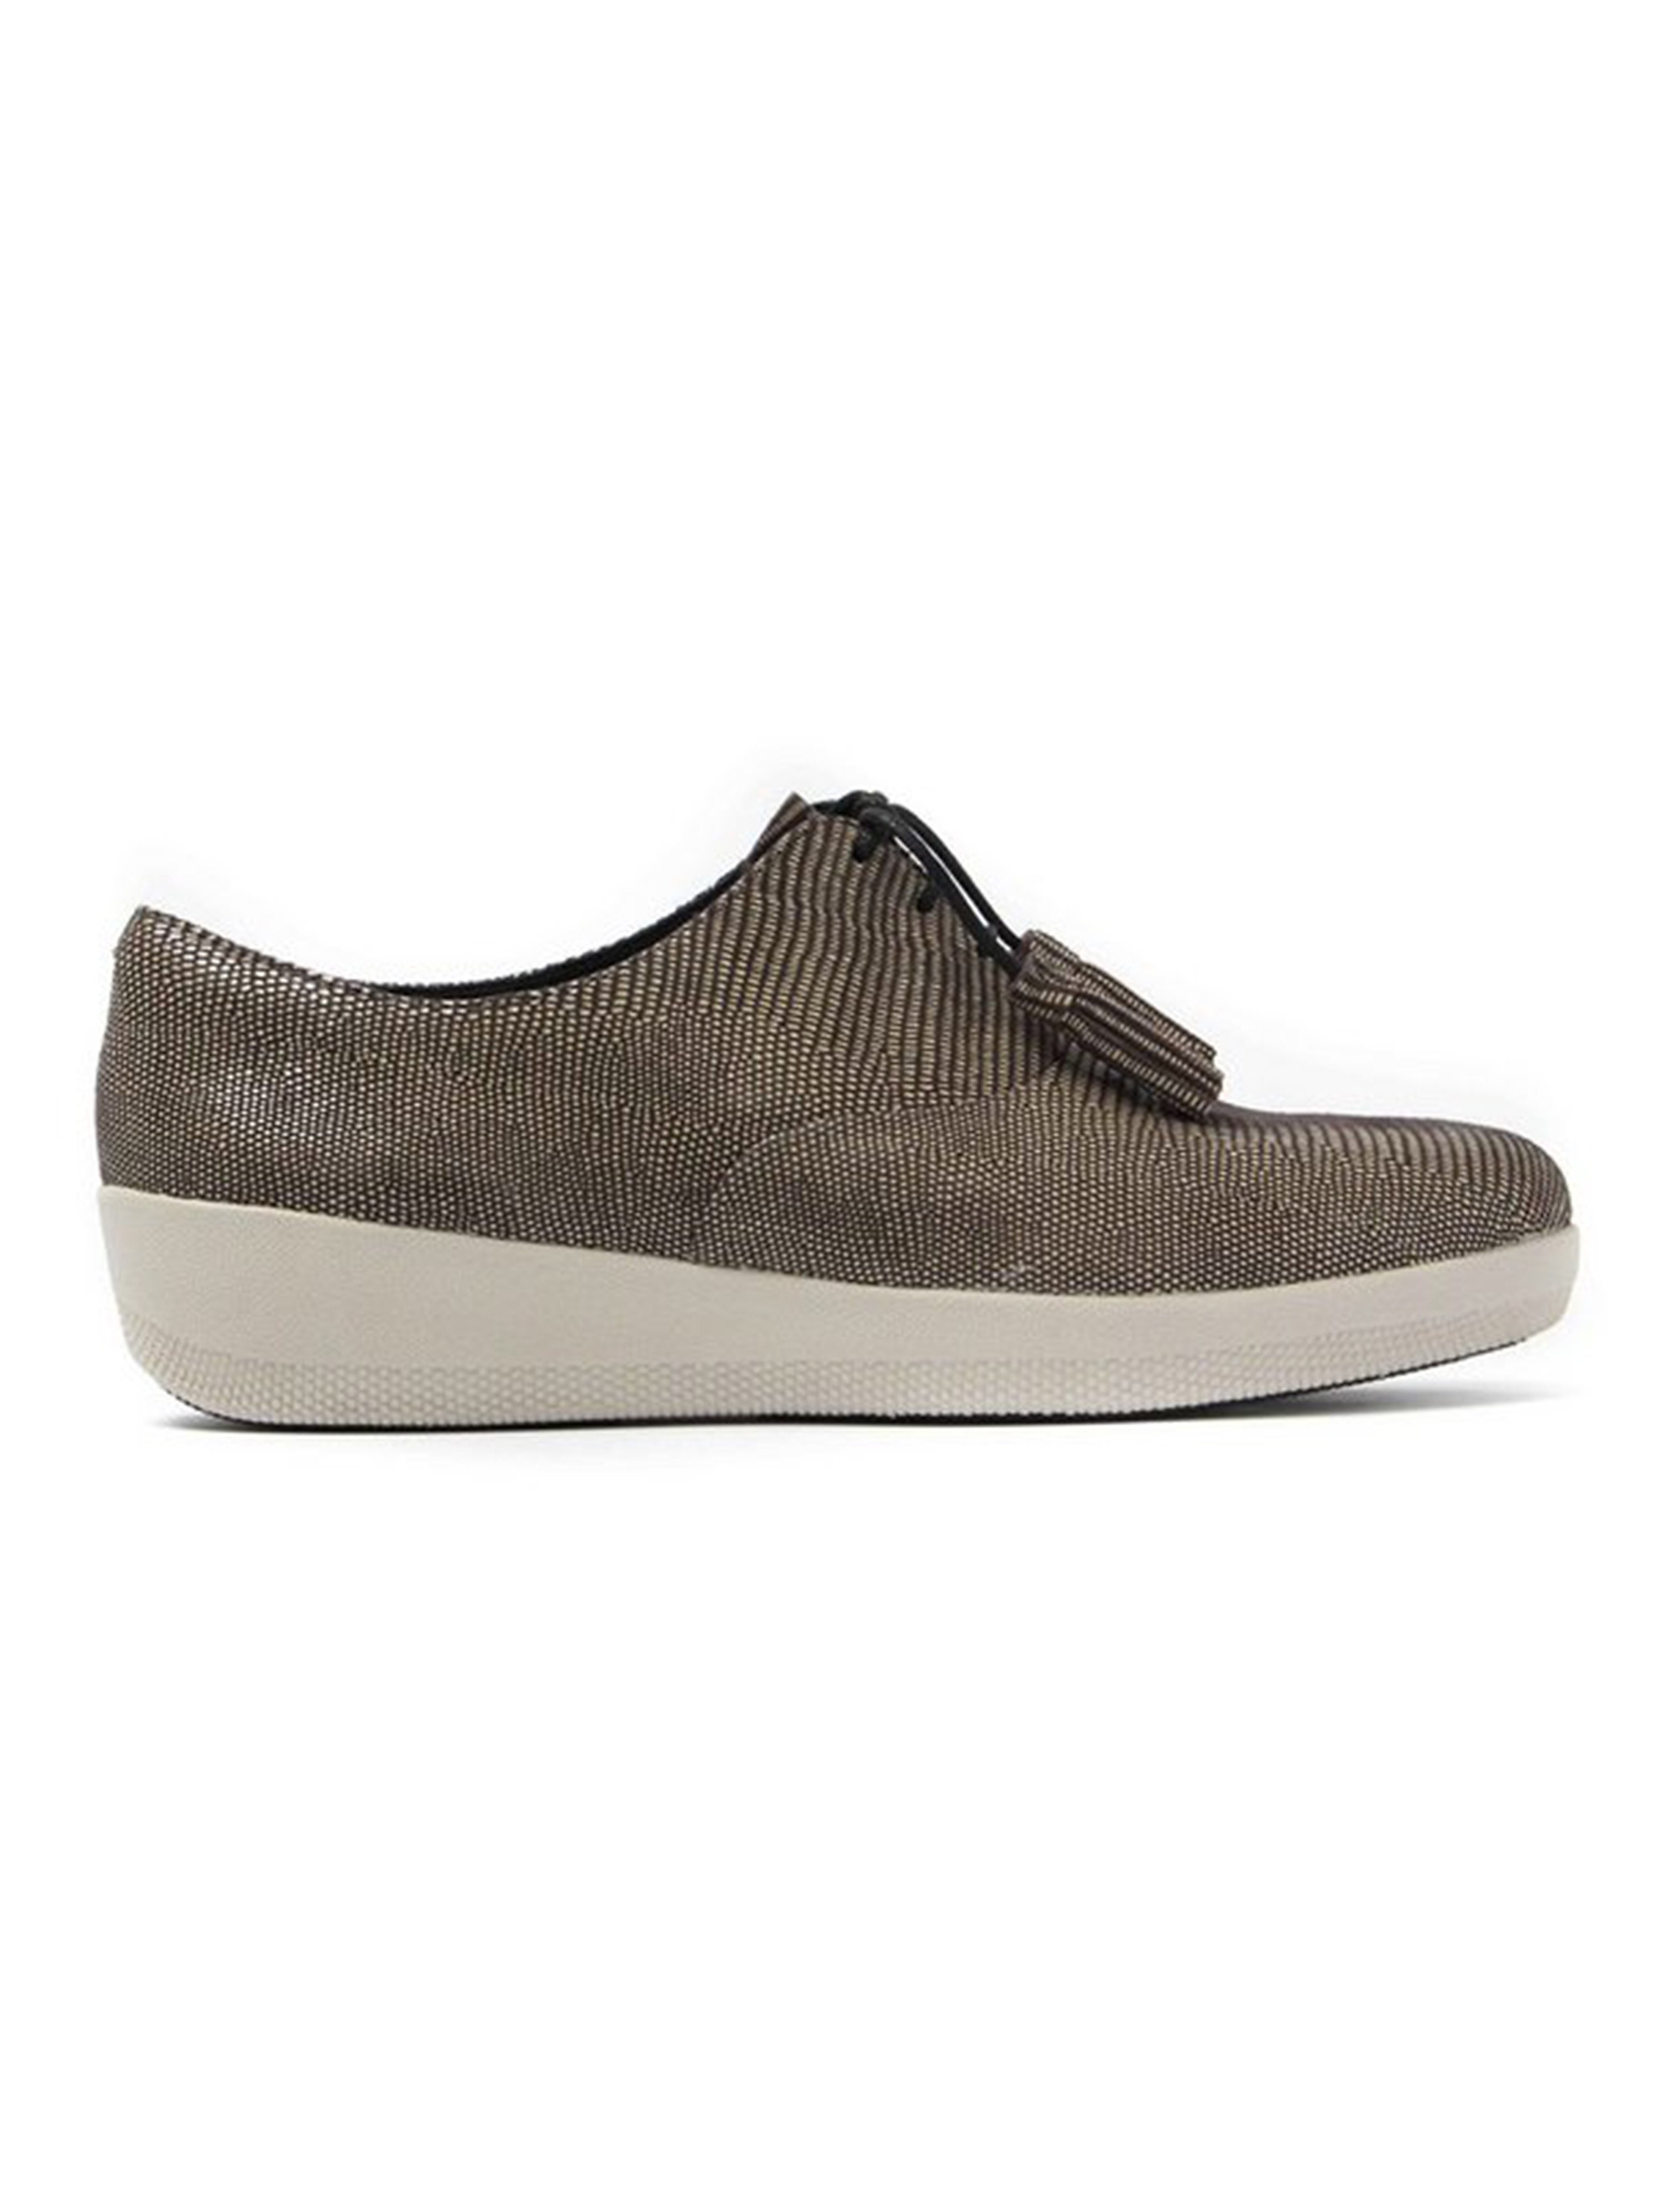 FitFlop Women's Classic Tassel SuperOxford Trainers - Chocolate Brown